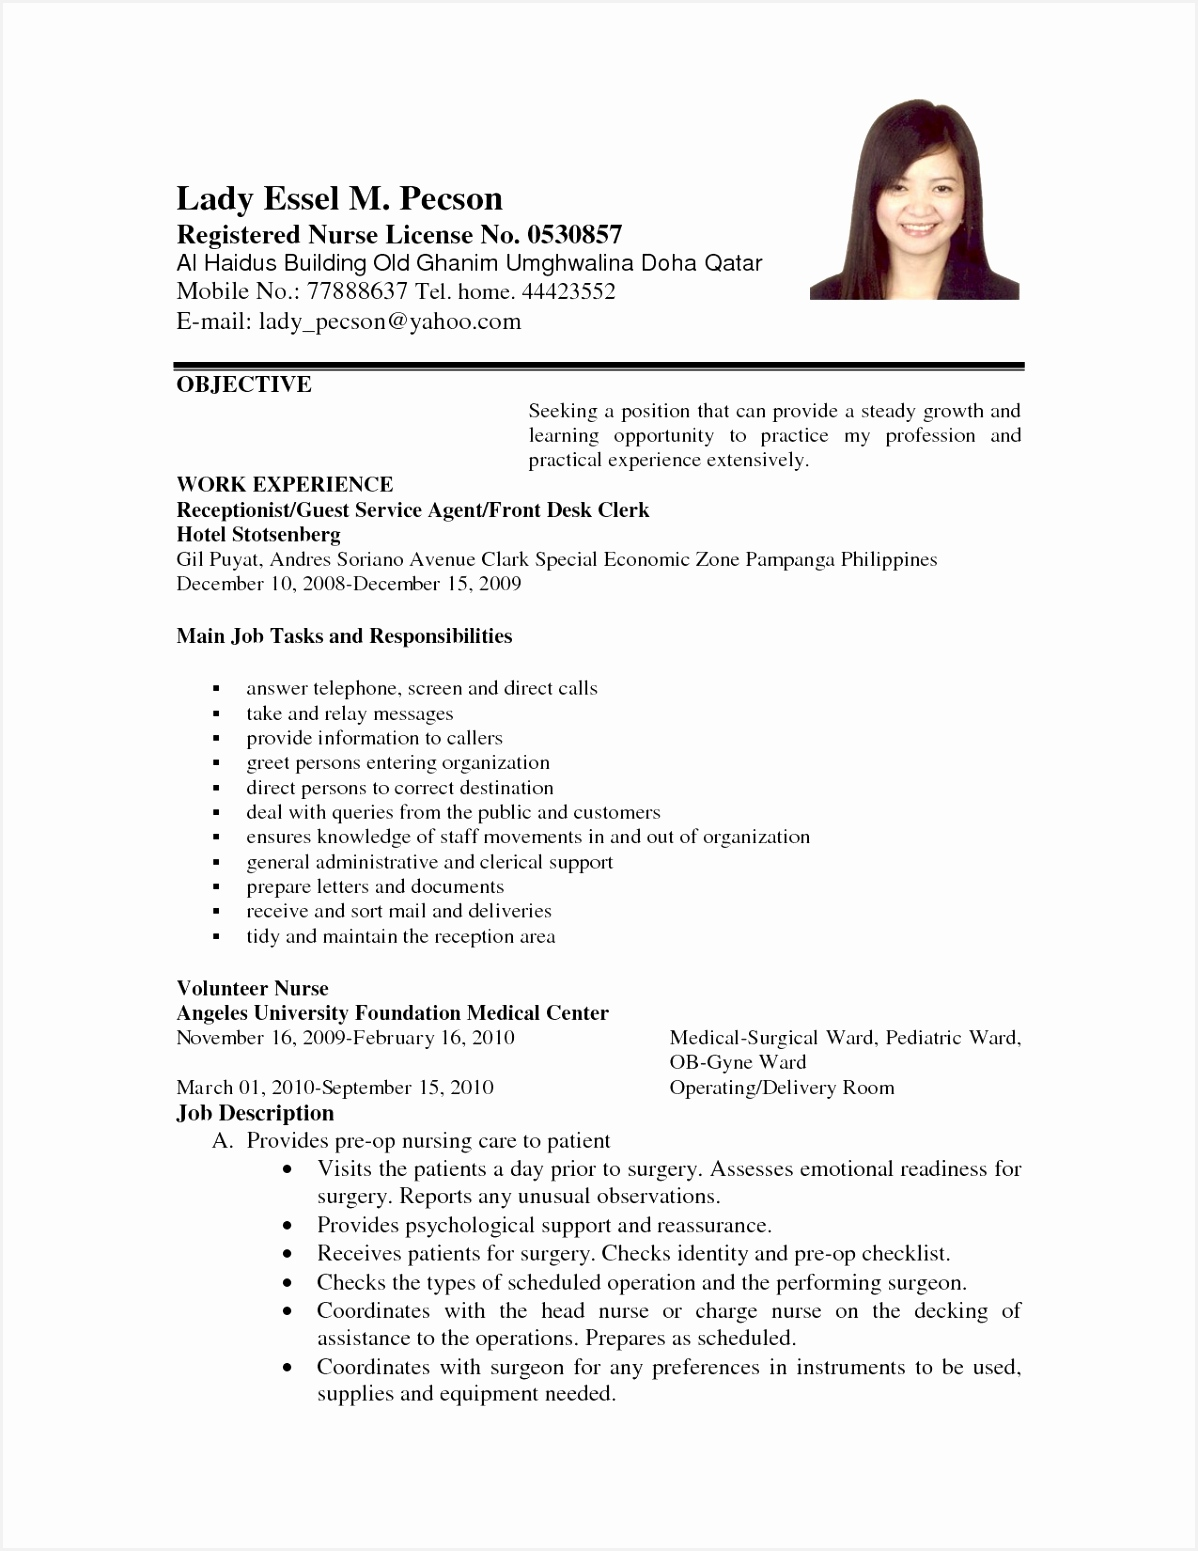 Computer Skills On Resume Example Hjg4q Beautiful Puter Skills Resume Lovely Awesome Research Skills Resume New15511198